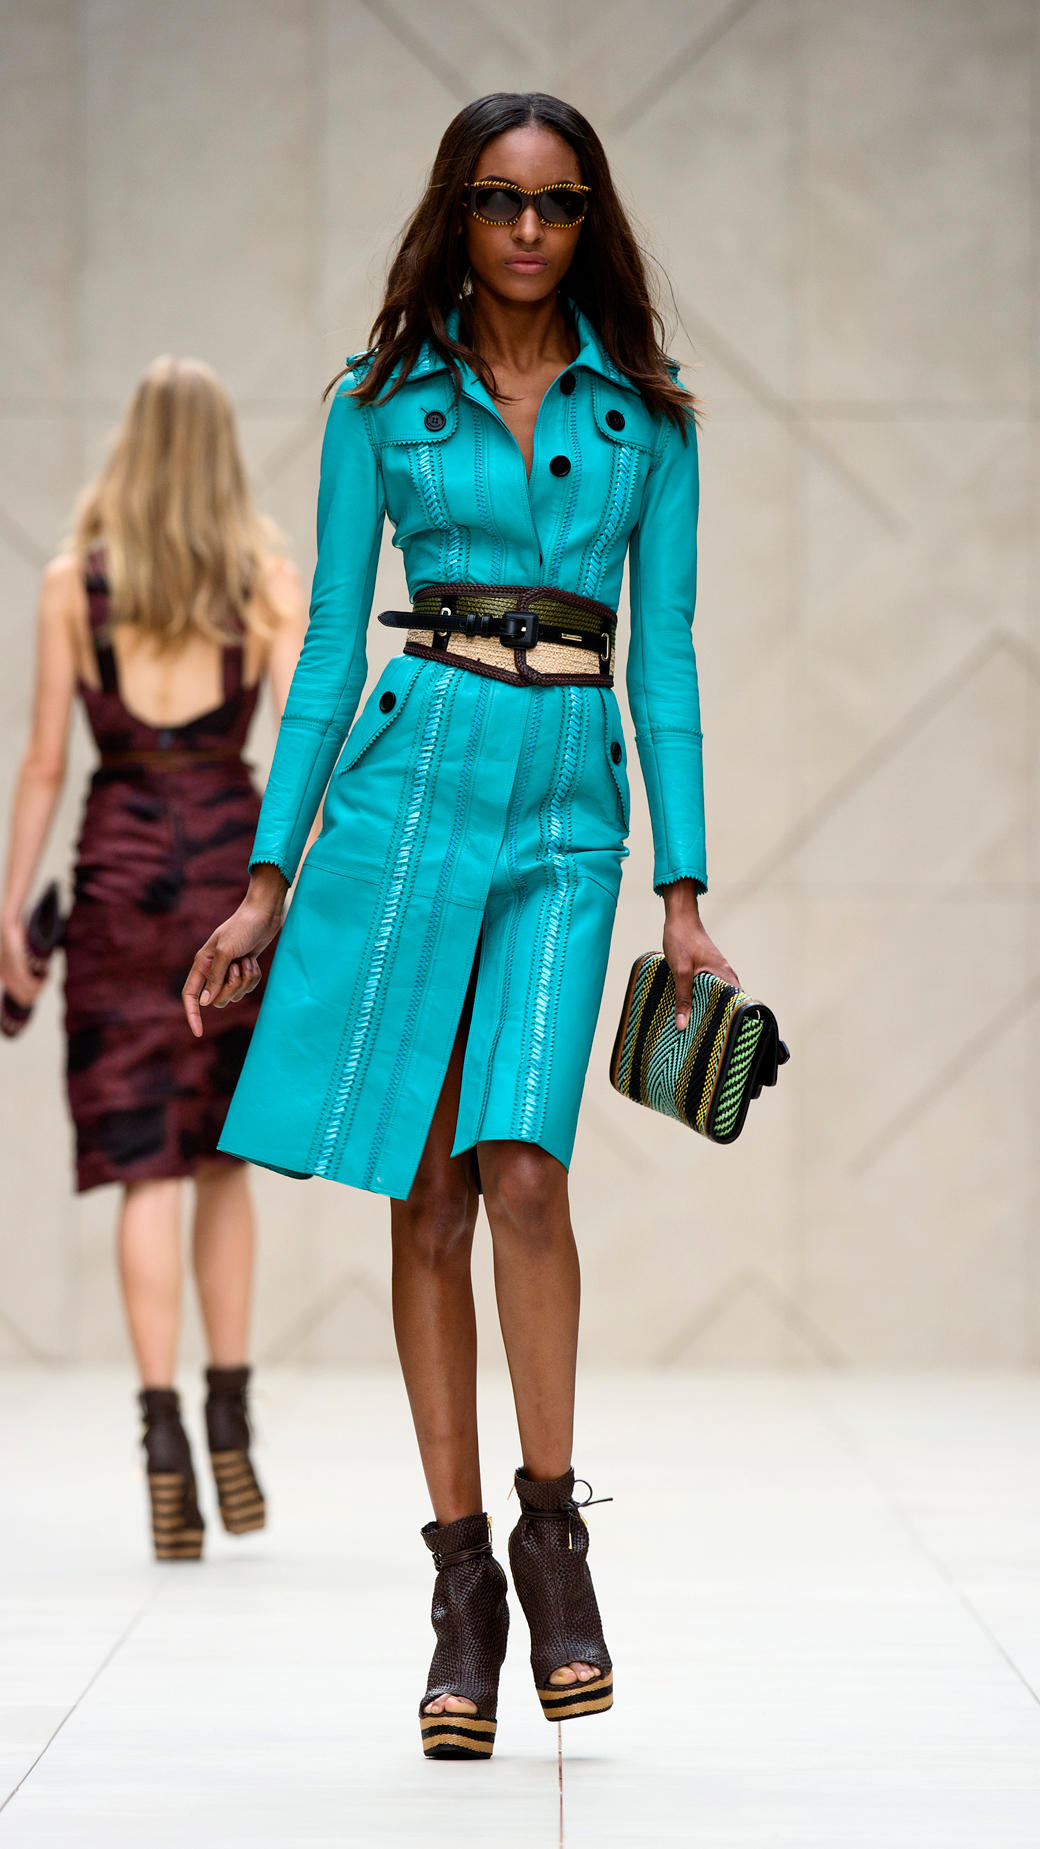 Burberry Prorsum Runway London Fashion Week Aw14: Burberry Prorsum Brogue Leather Trench Coat In Blue